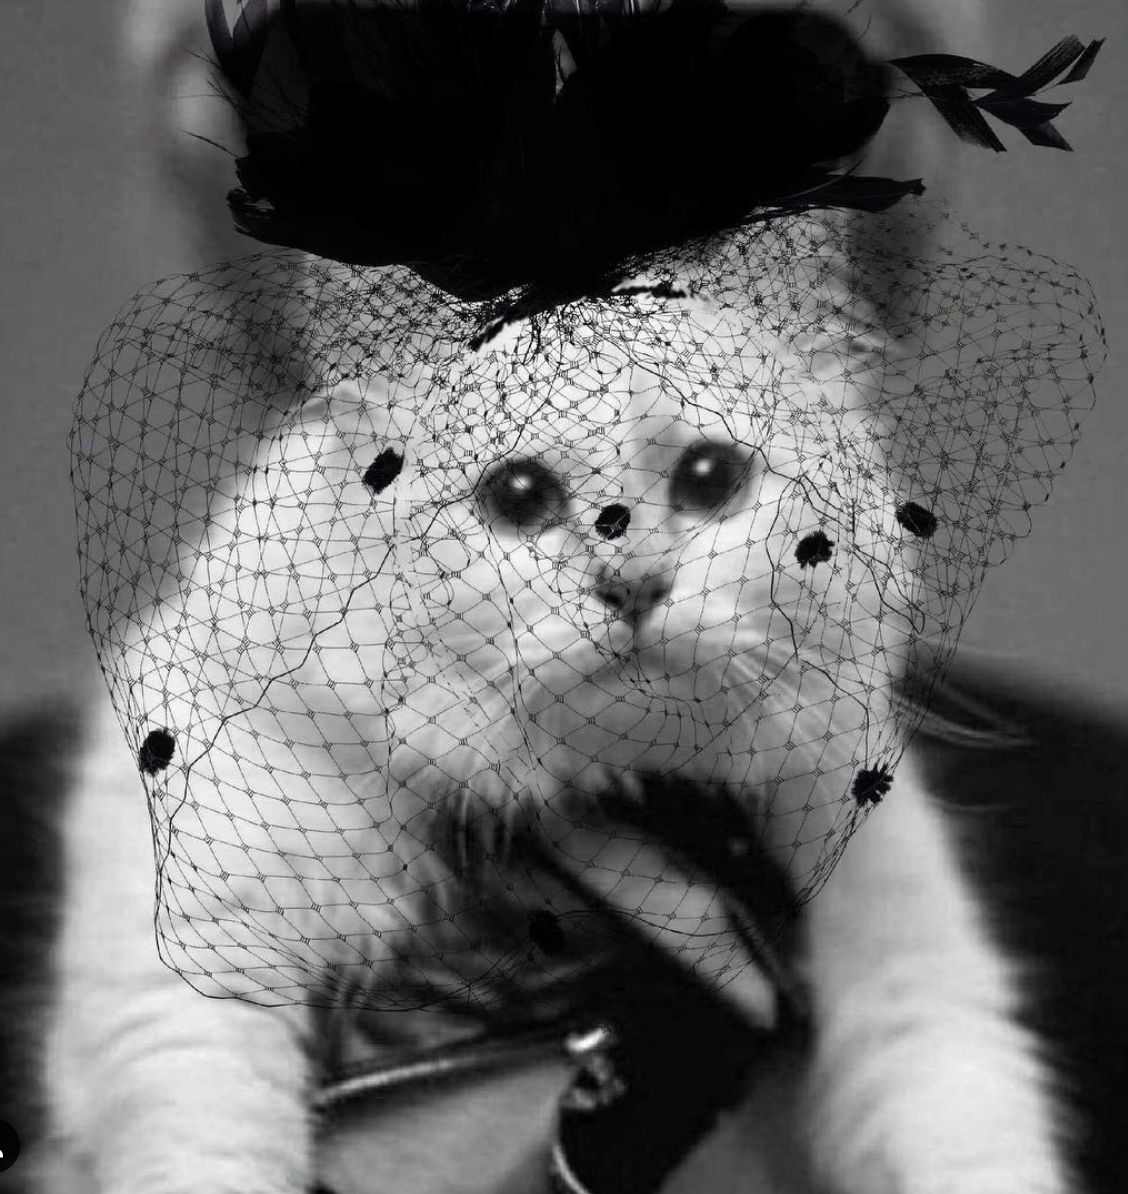 AWESOME ANIMALS: Choupette Lagerfeld's Heartfelt Tribute, Plus 4 Other Animal Tales To End The